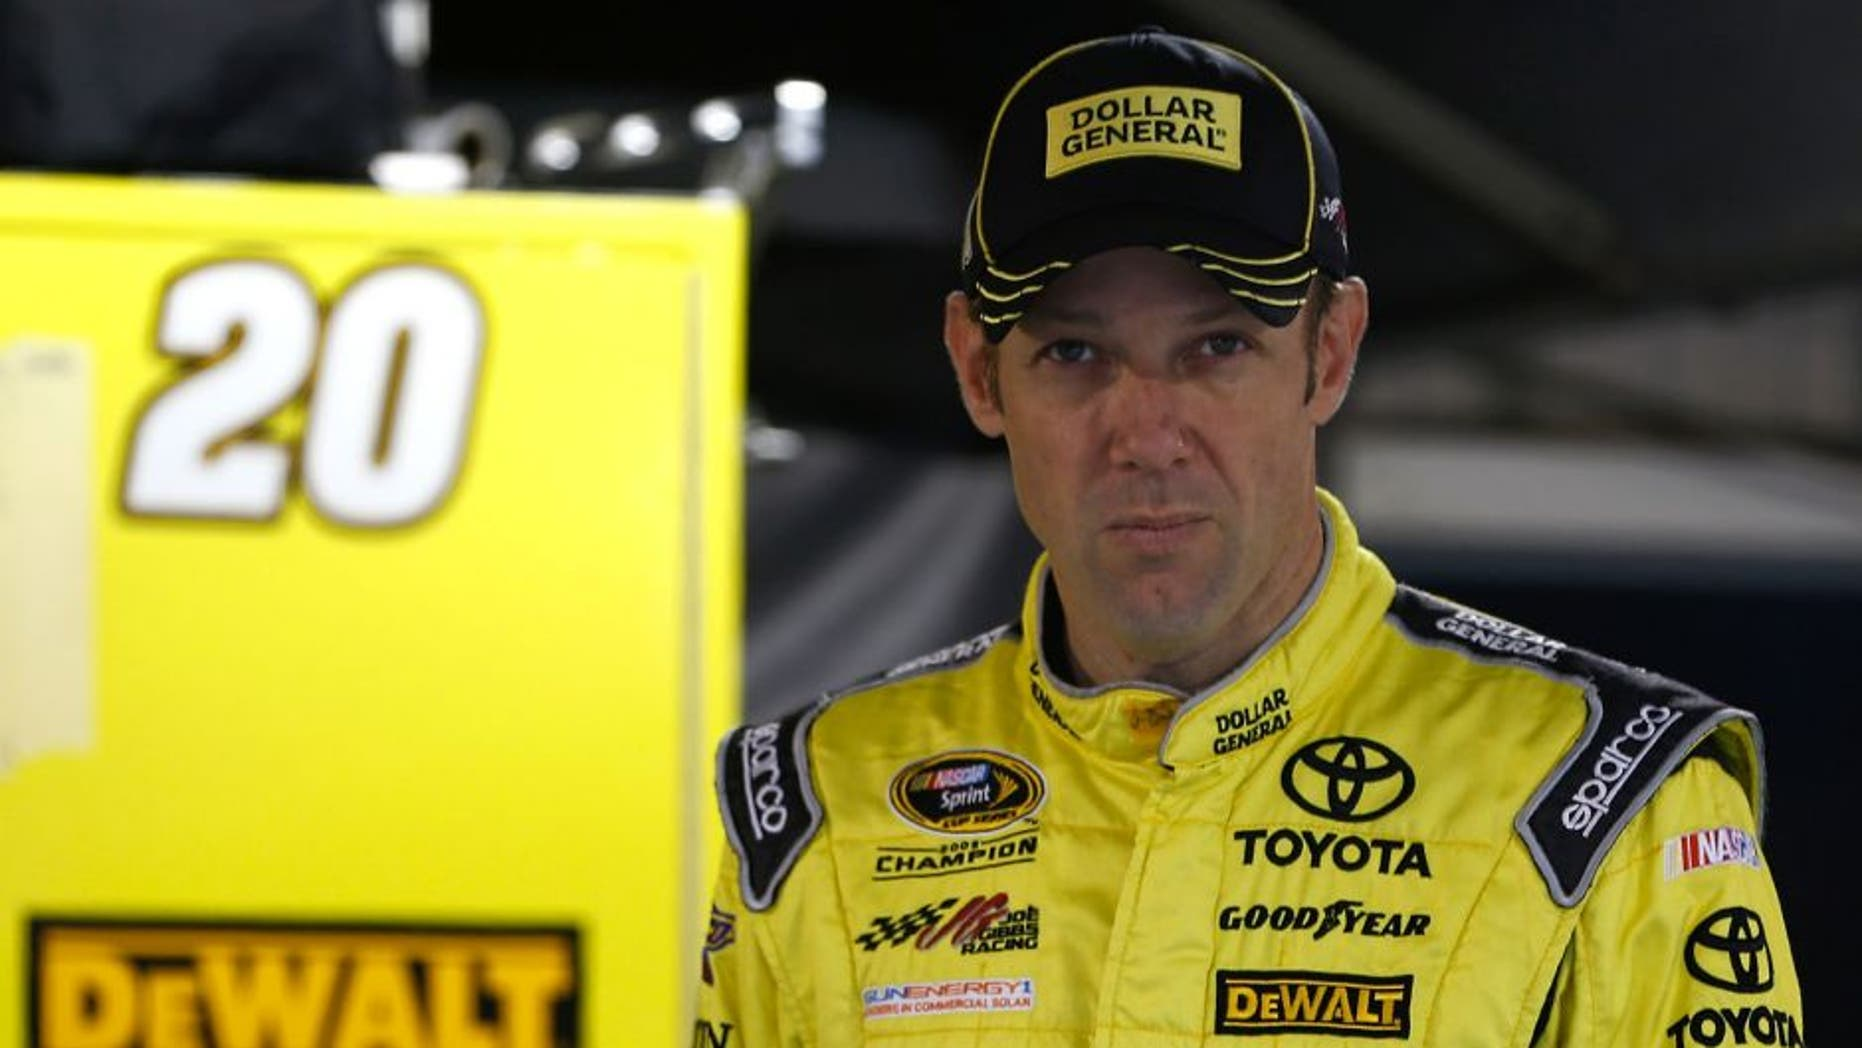 MARTINSVILLE, VA - OCTOBER 31: Matt Kenseth, driver of the #20 Dollar General Toyota, stands in the garage area during practice for the NASCAR Sprint Cup Series Goody's Headache Relief Shot 500 at Martinsville Speedway on October 31, 2015 in Martinsville, Virginia. (Photo by Jeff Zelevansky/Getty Images)